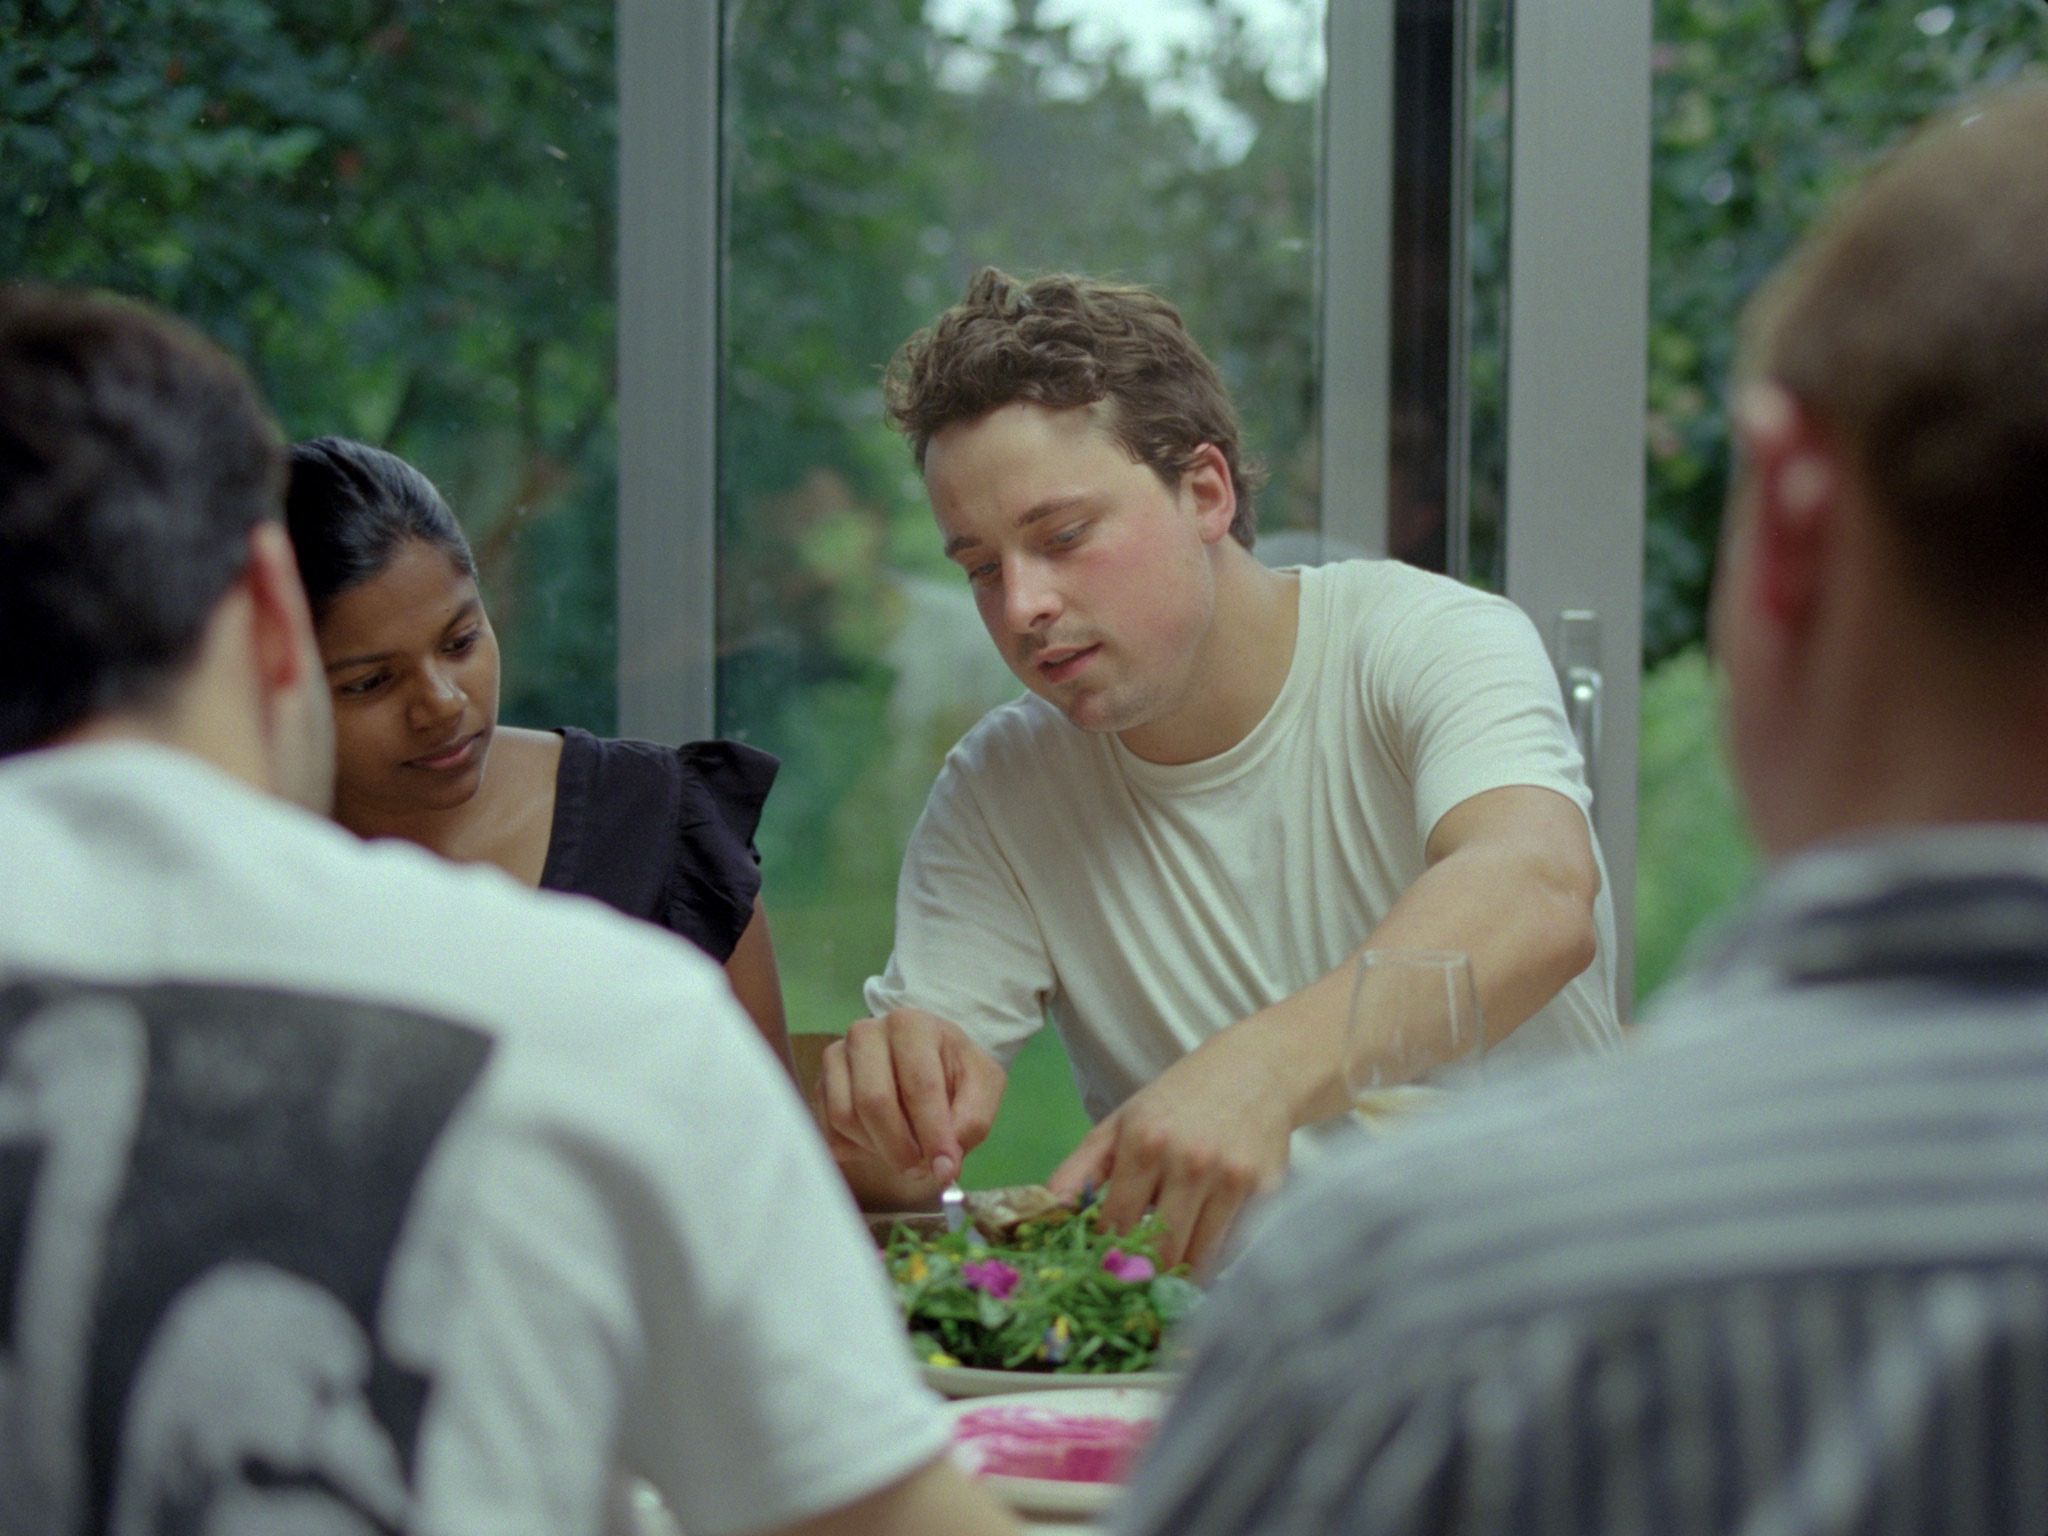 A young man surrounded by people sitting at a table, pointing towards the food on the middle of the table.